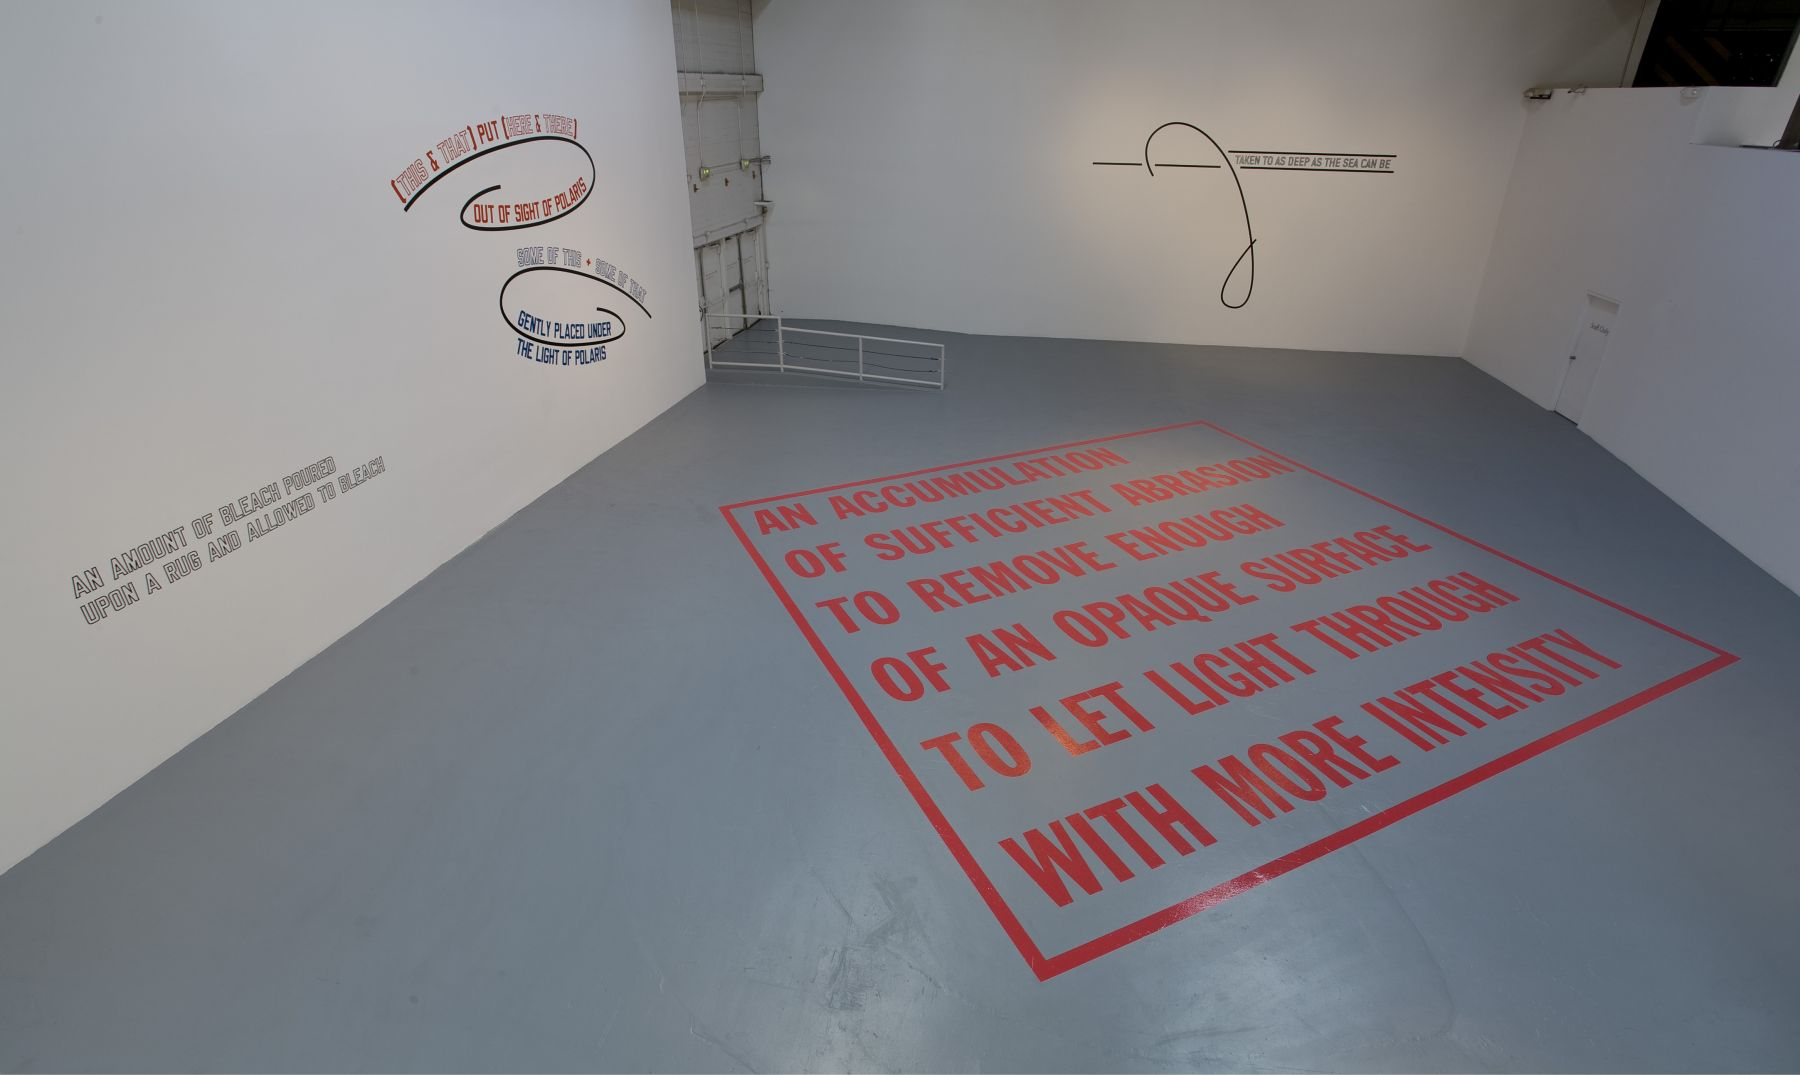 Lawrence Weiner, AS FAR AS THE EYE CAN SEE, MOCA